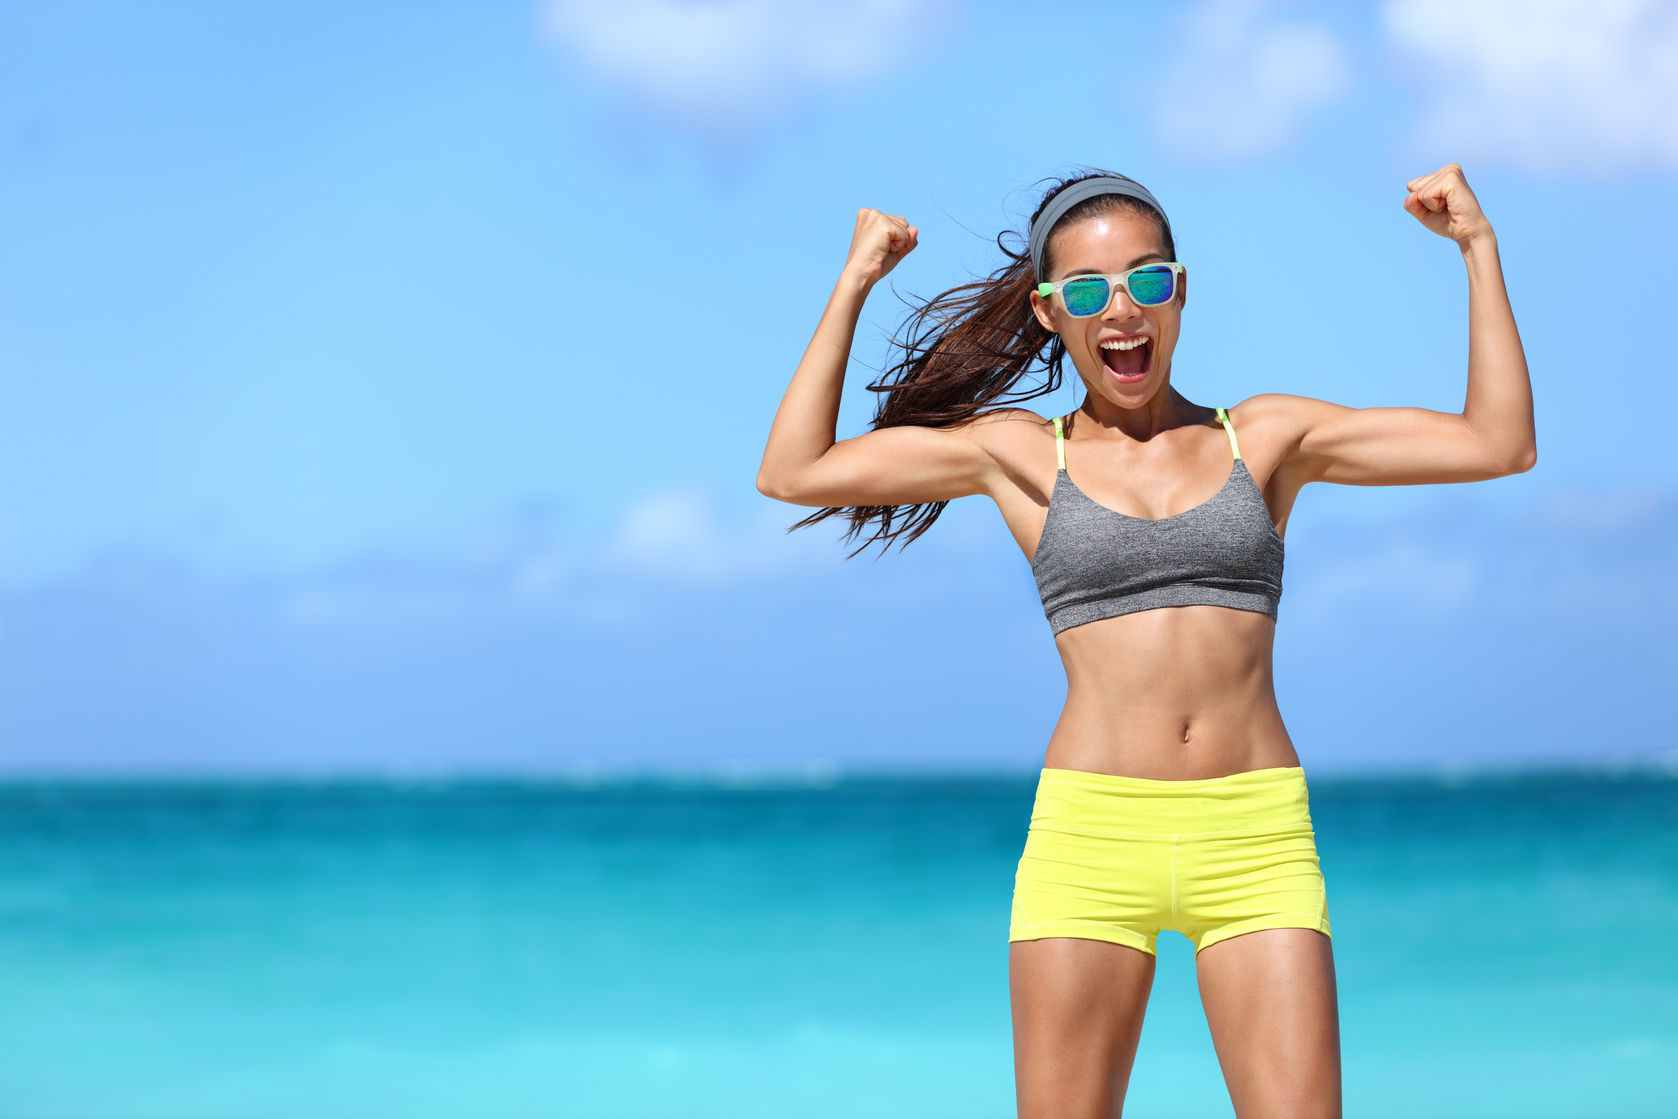 Start Your Summer Off with a Cardio Dumbbell Workout on the Beach!